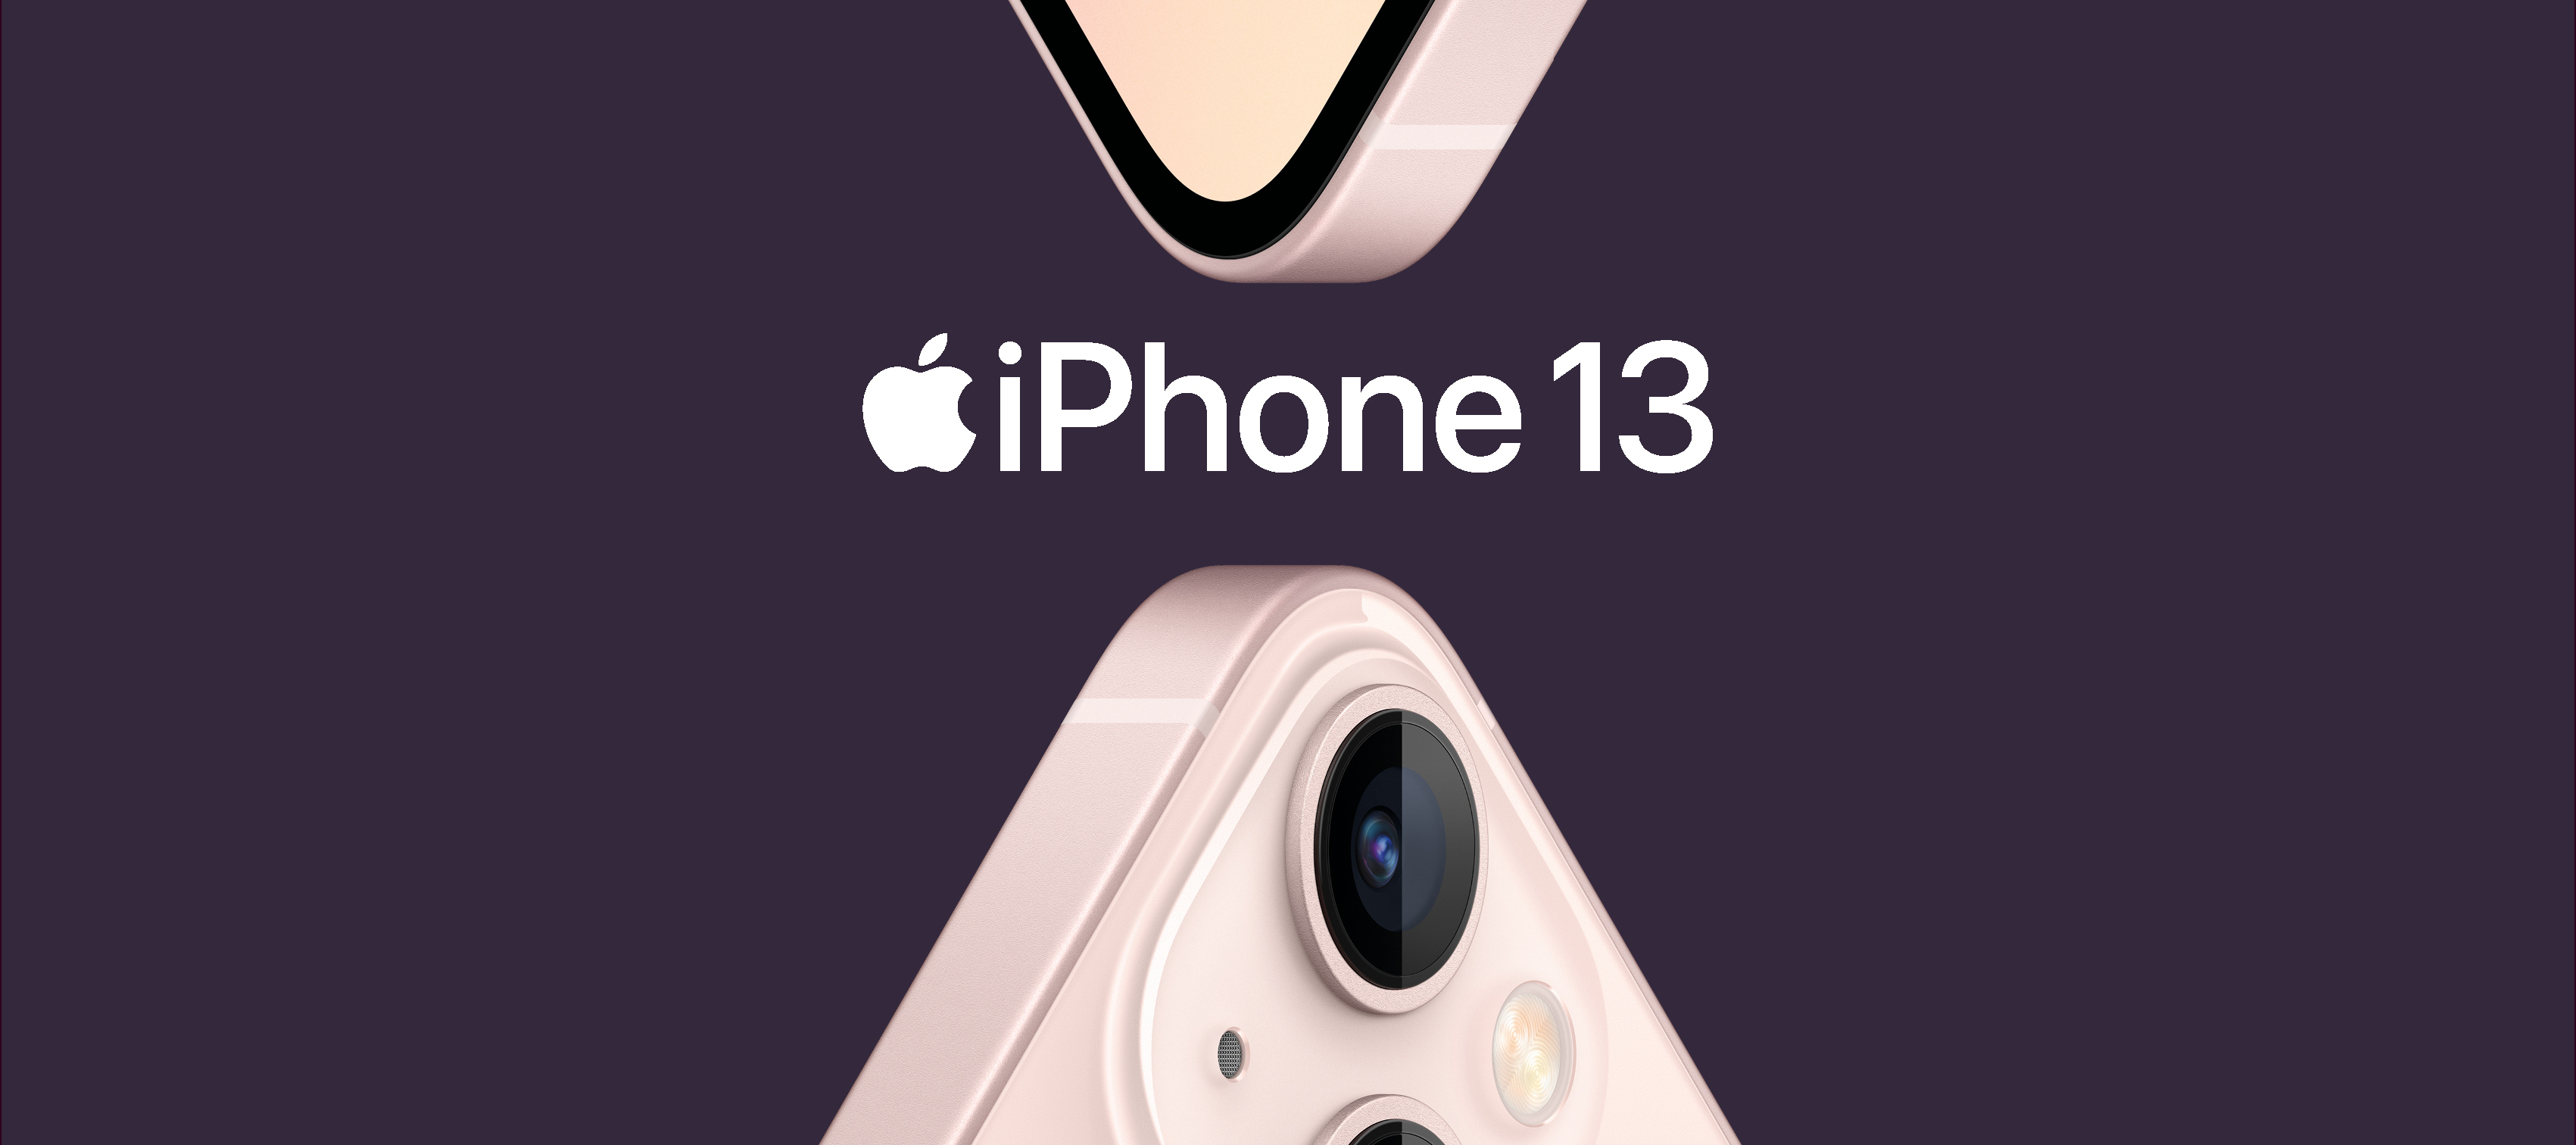 Official iPhone 13 Preorder Thread